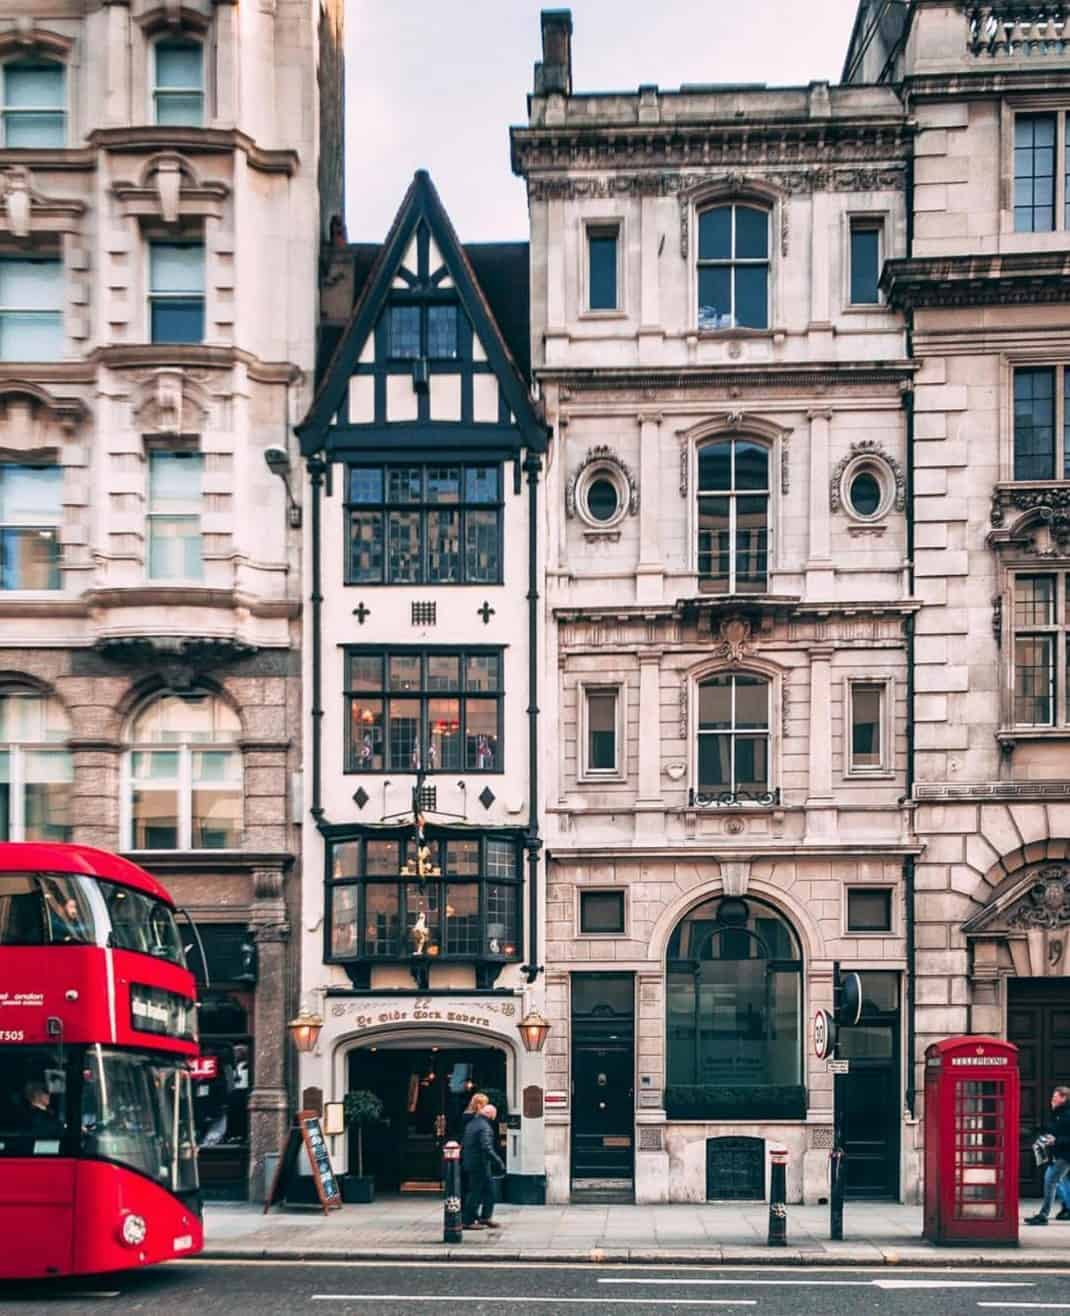 2 Days In London - Covent Garden and Seven Dials